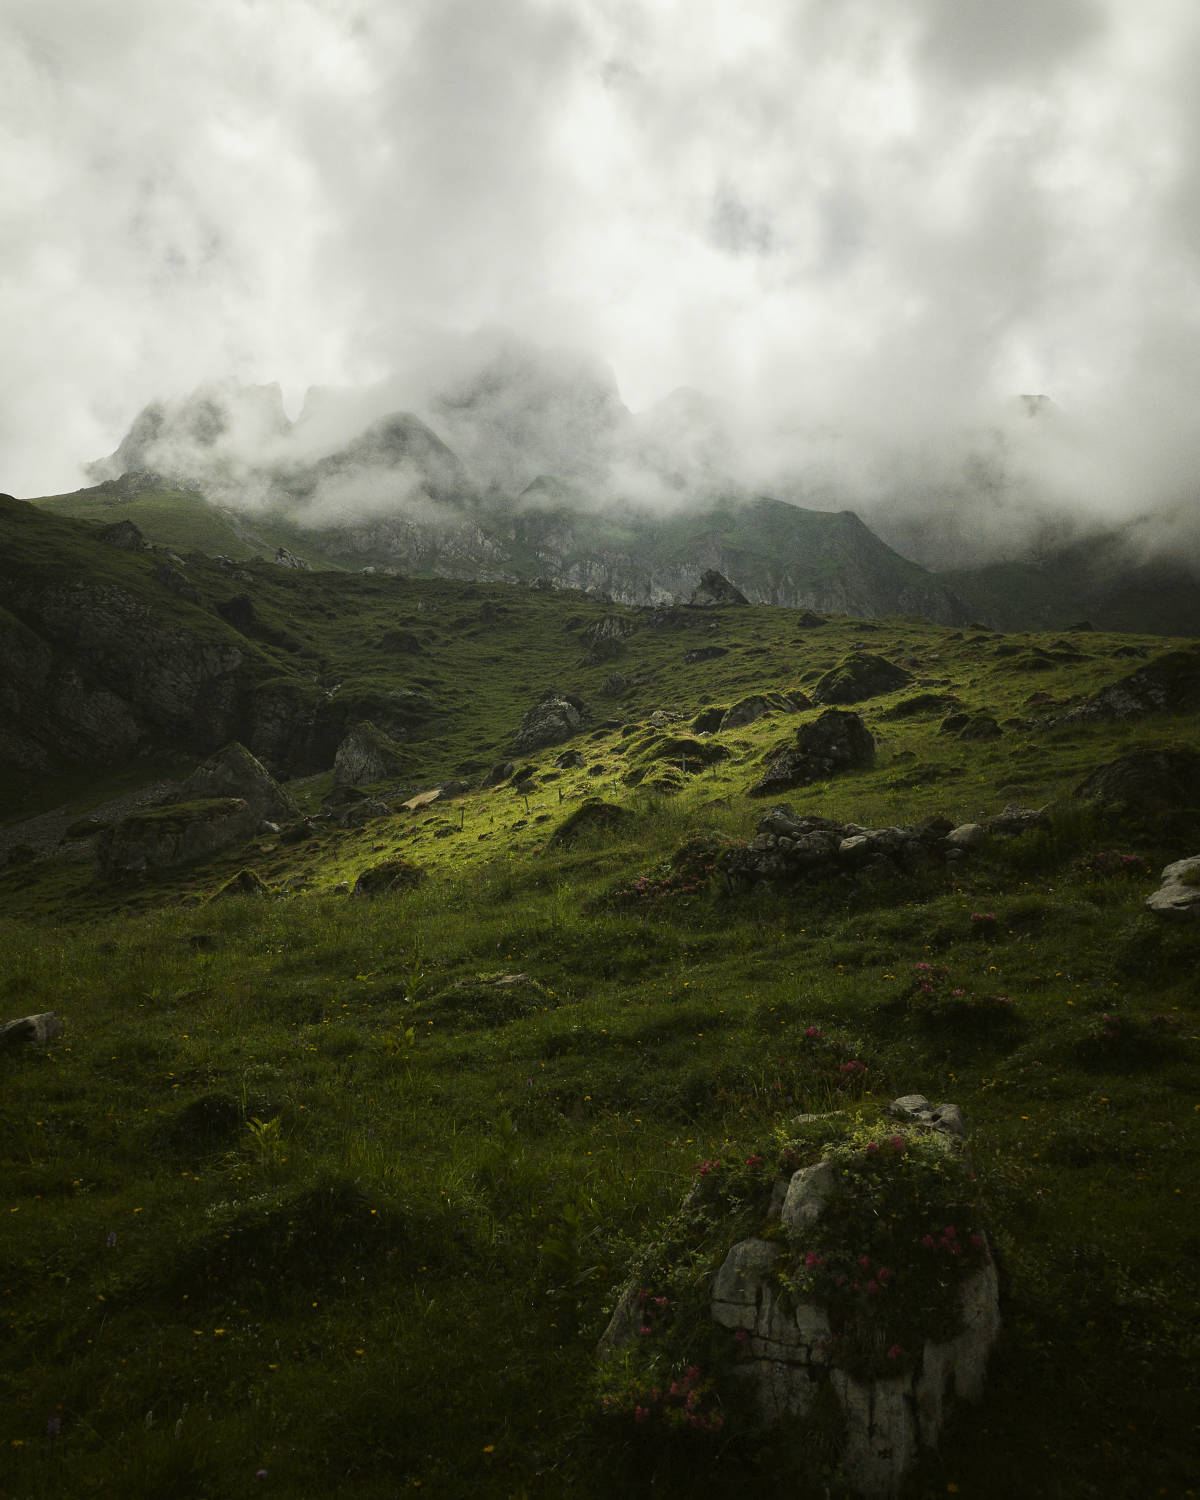 Light shines through the cloud cover onto a green meadow in the canton of Appenzell, Switzerland